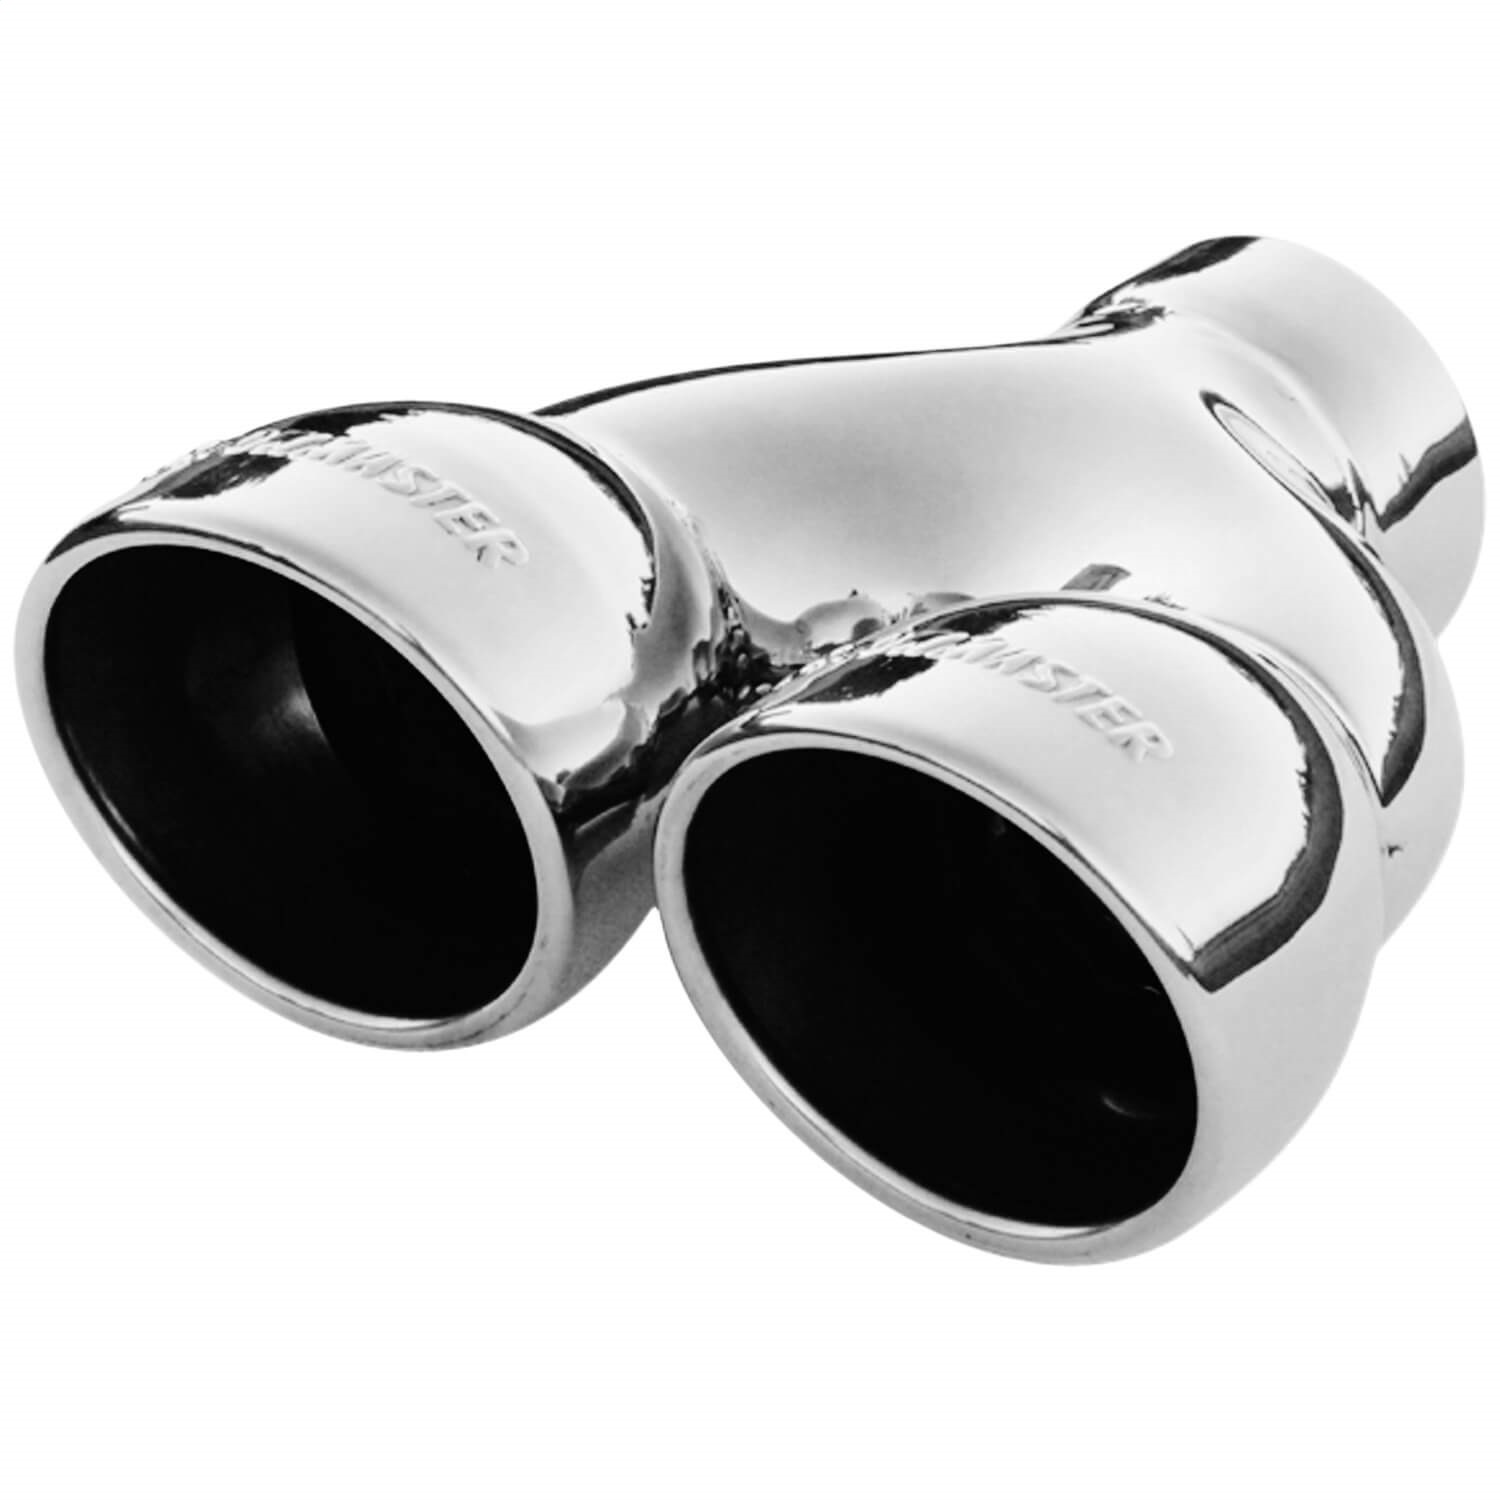 Flowmaster 15369 Stainless Steel Exhaust Tip